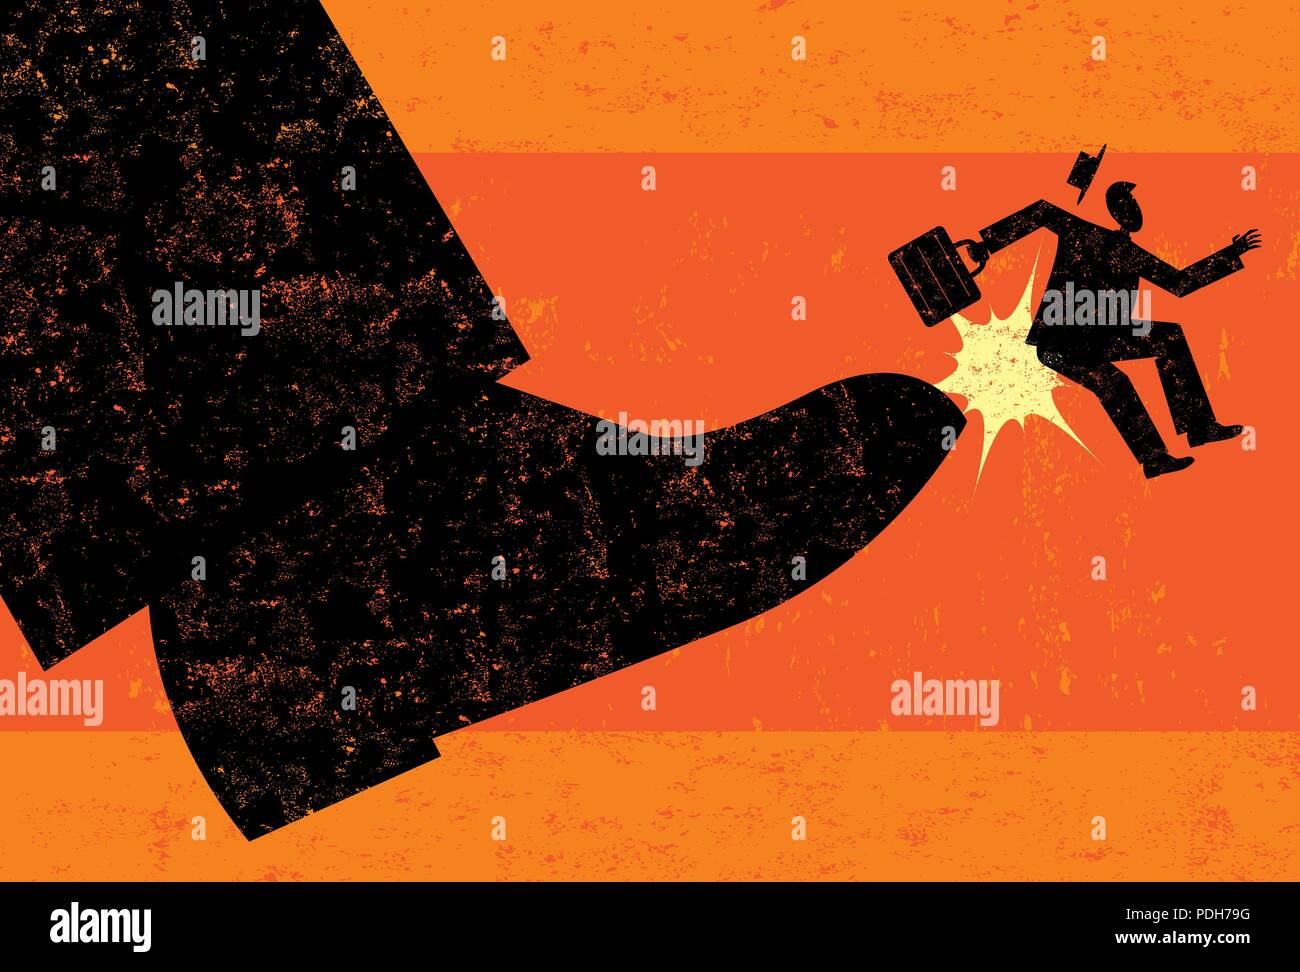 Getting Fired. A businessman getting booted from his job. - Stock Vector